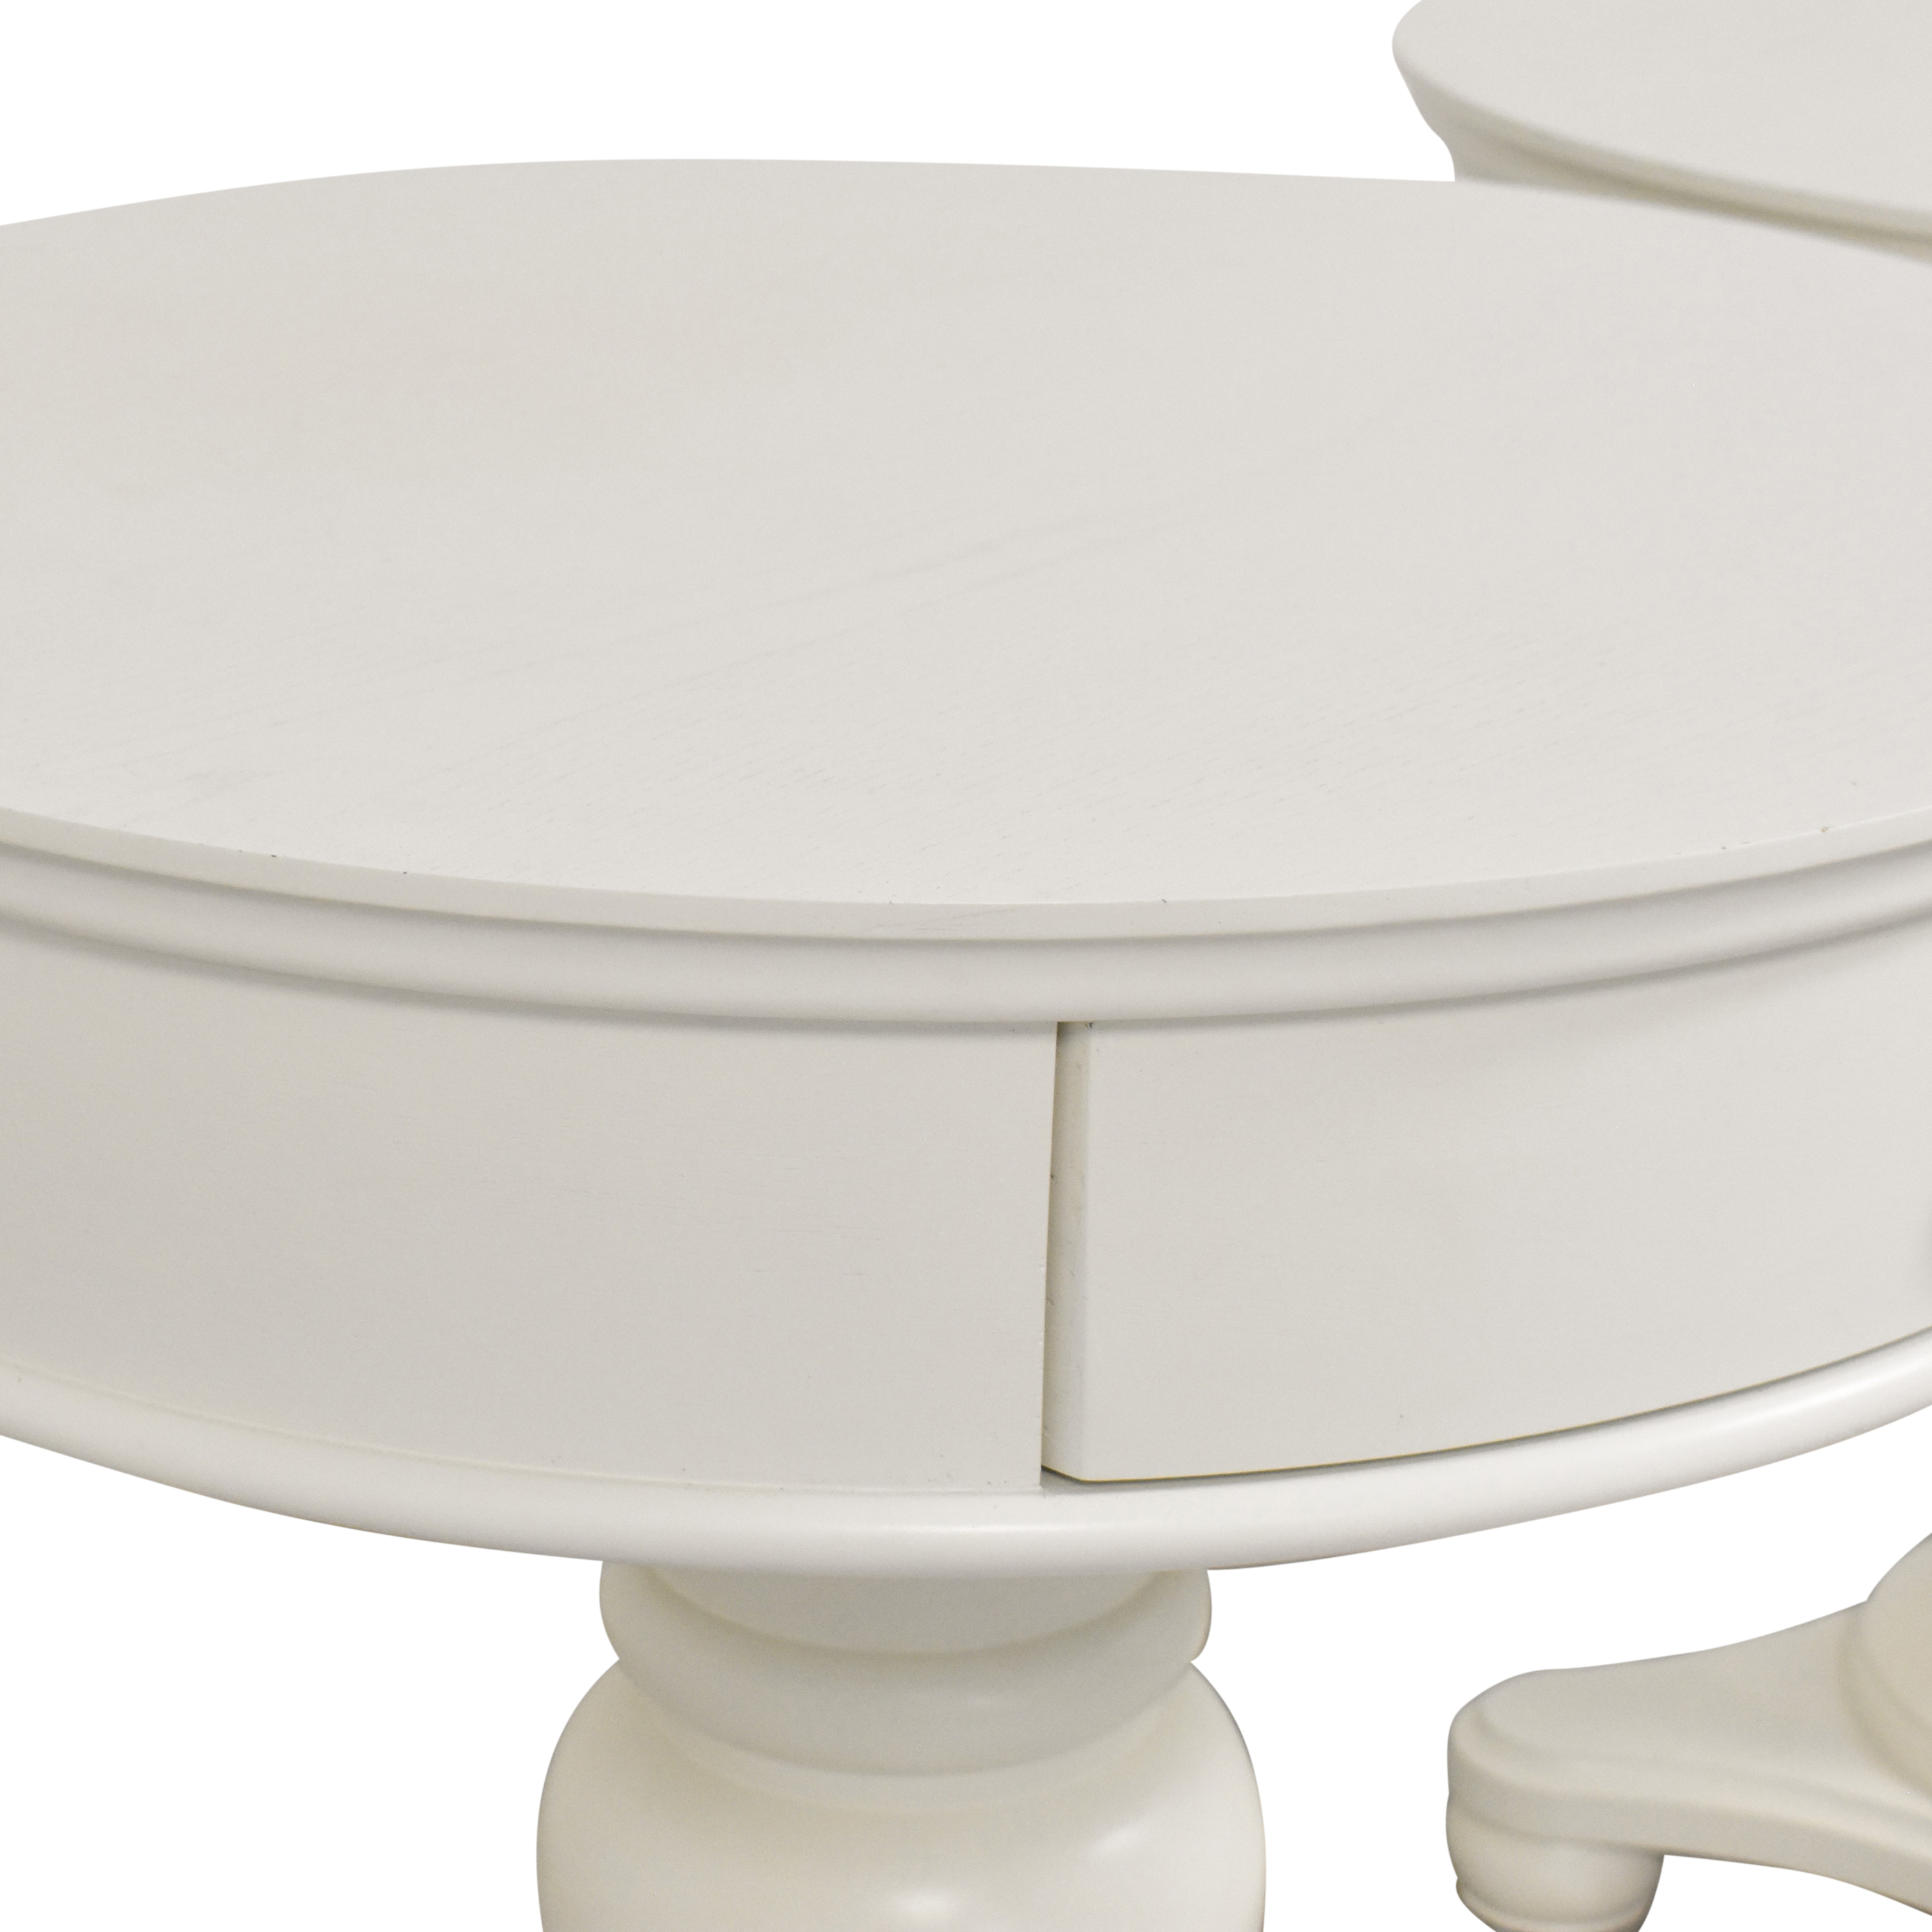 Pottery Barn Francisco End Tables sale